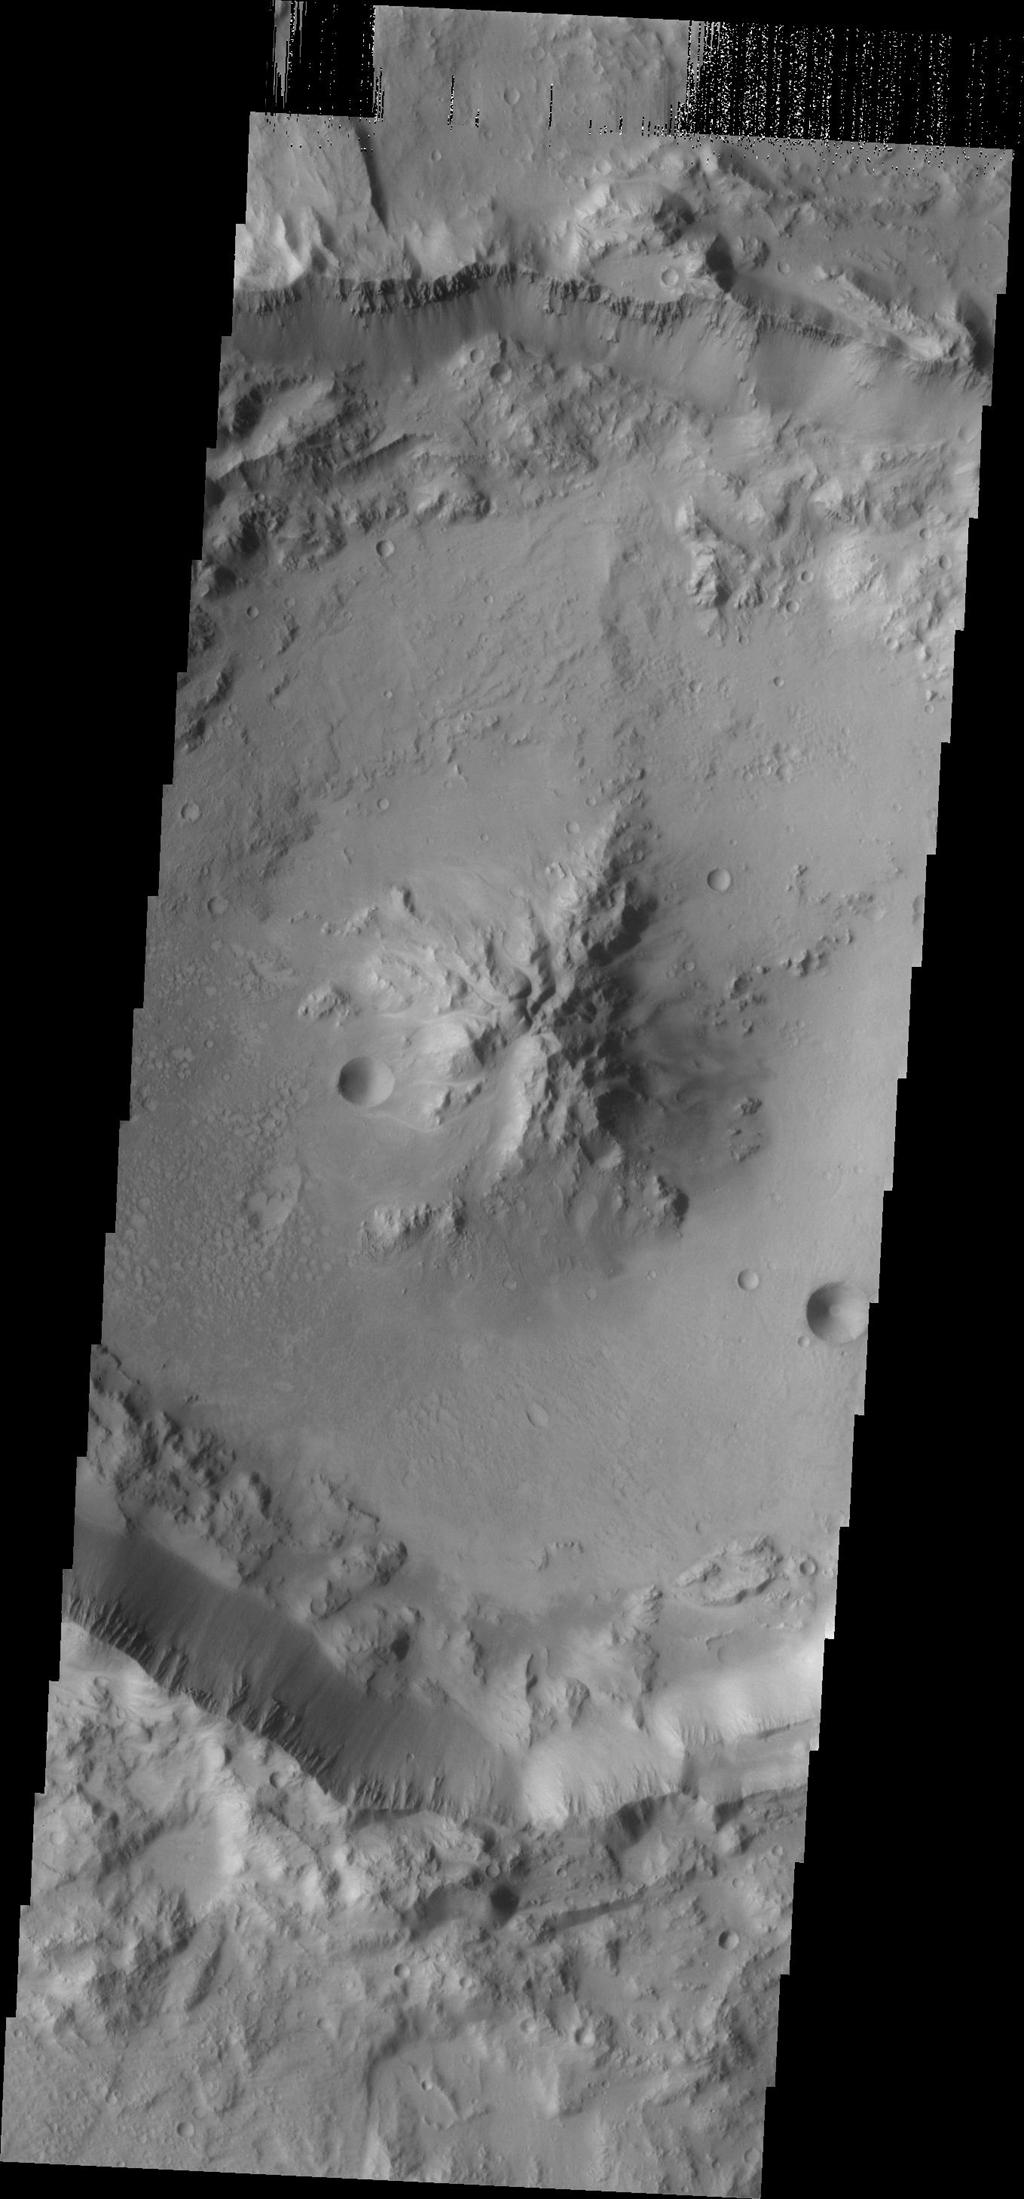 As crater size increases, craters become more complex. This moderate size crater contains a central peak, created by rebound of molten material just following the impact. This image was captured by NASA's Mars Odyssey on Sept. 8, 2010.